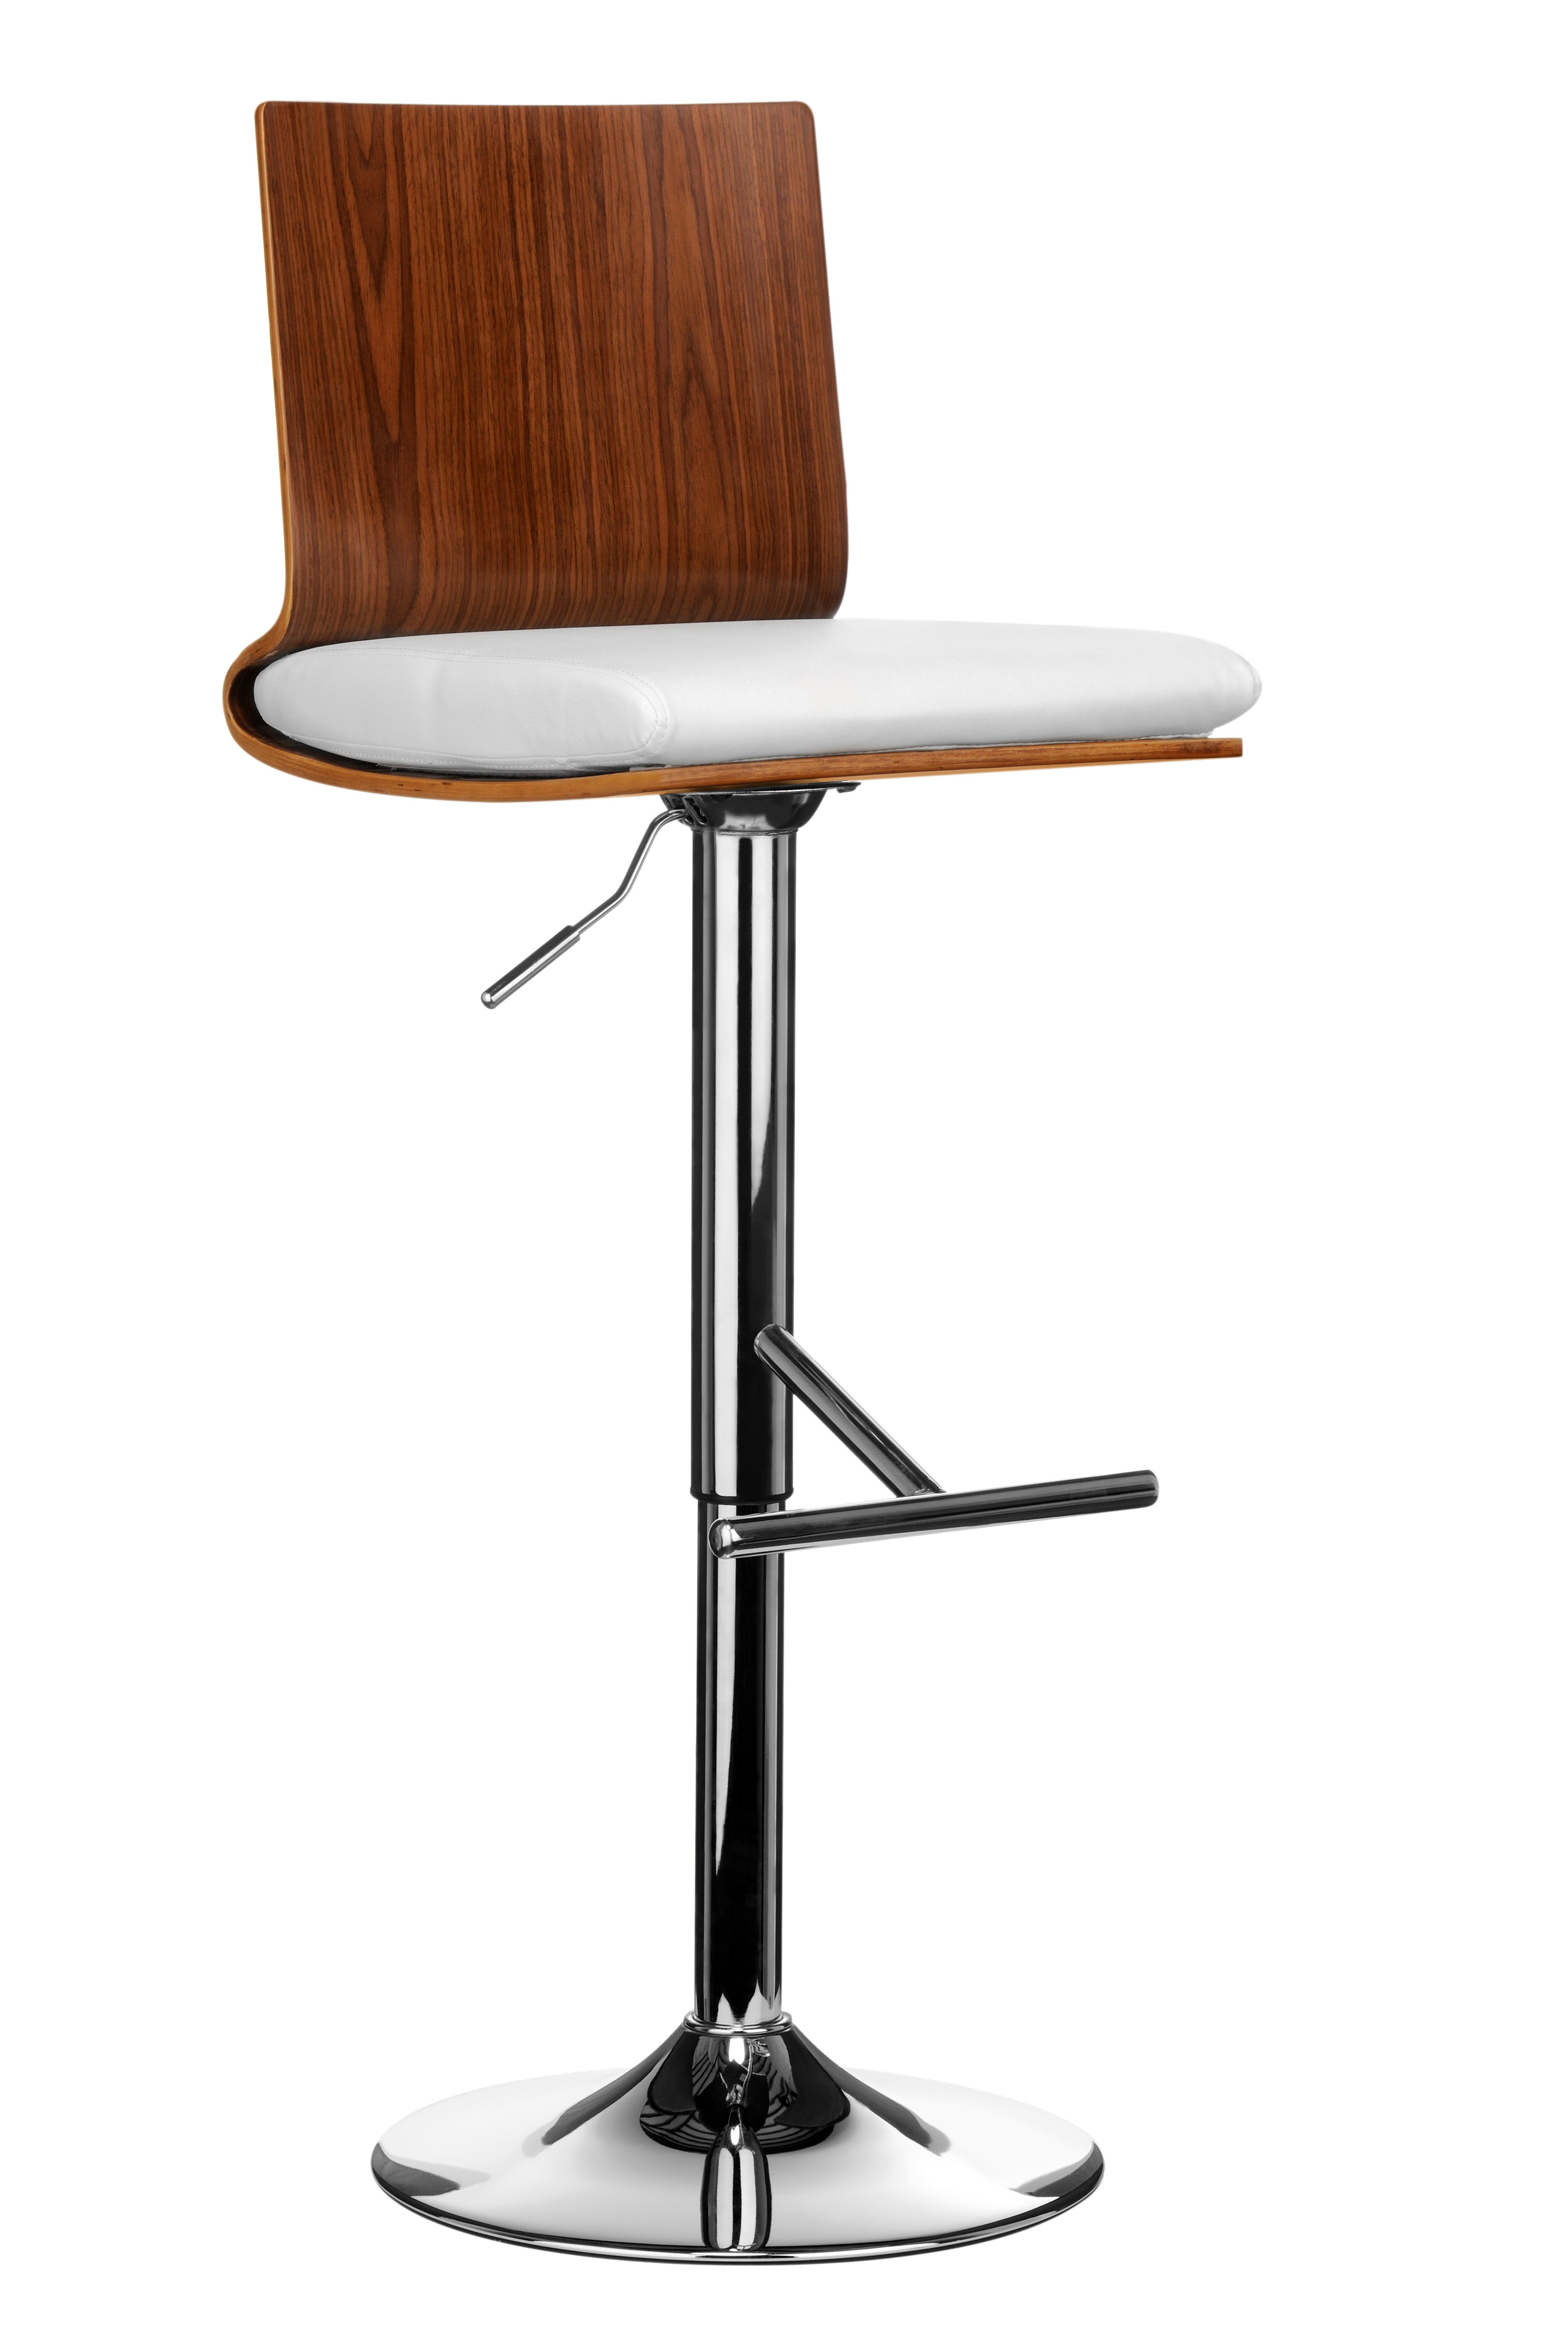 Bar Chair Sleek And Stylish Bar Chair Attractive Walnut Wood